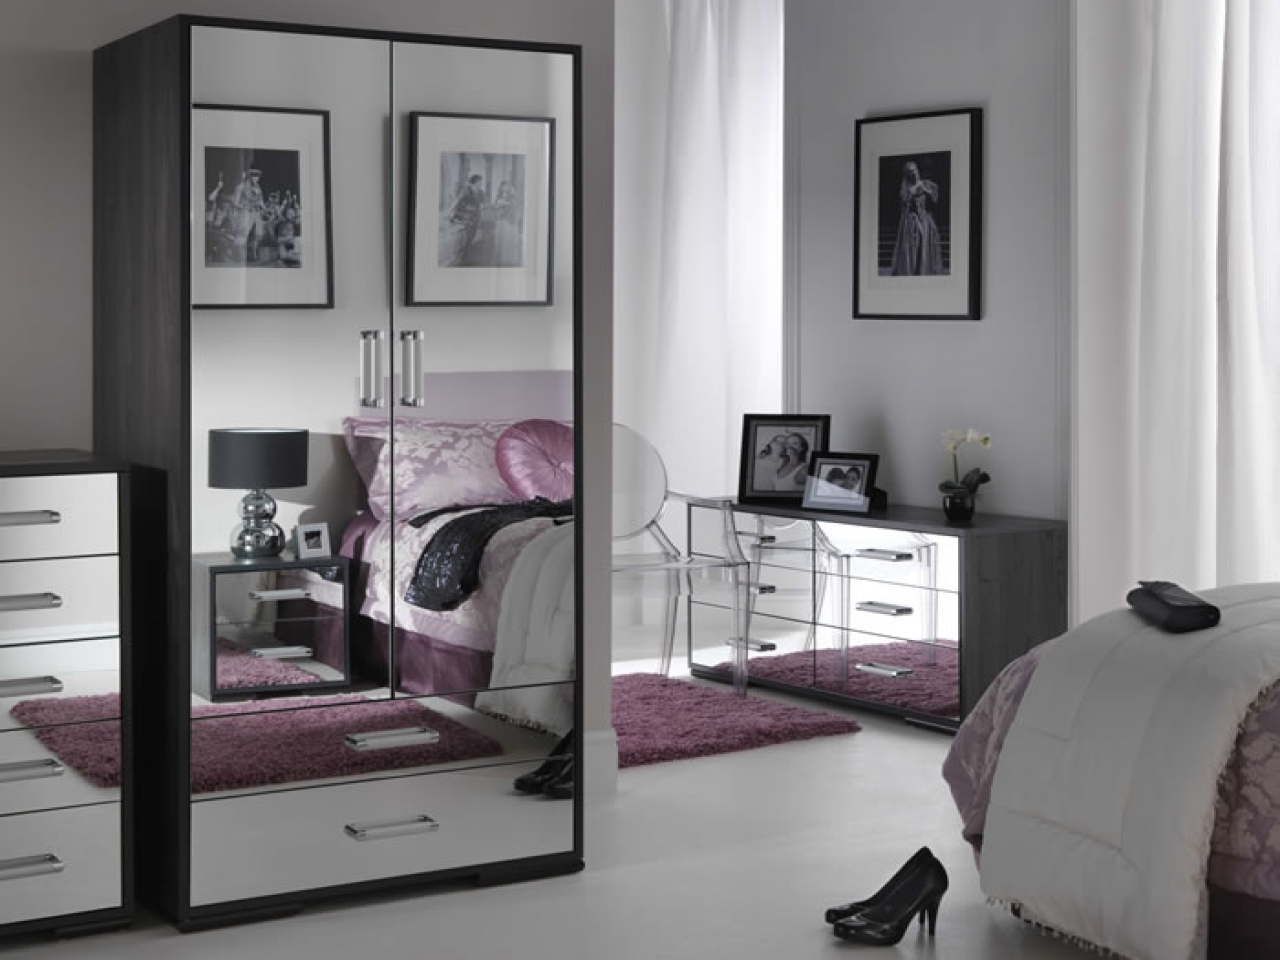 Wood and mirrored bedroom furniture | Hawk Haven